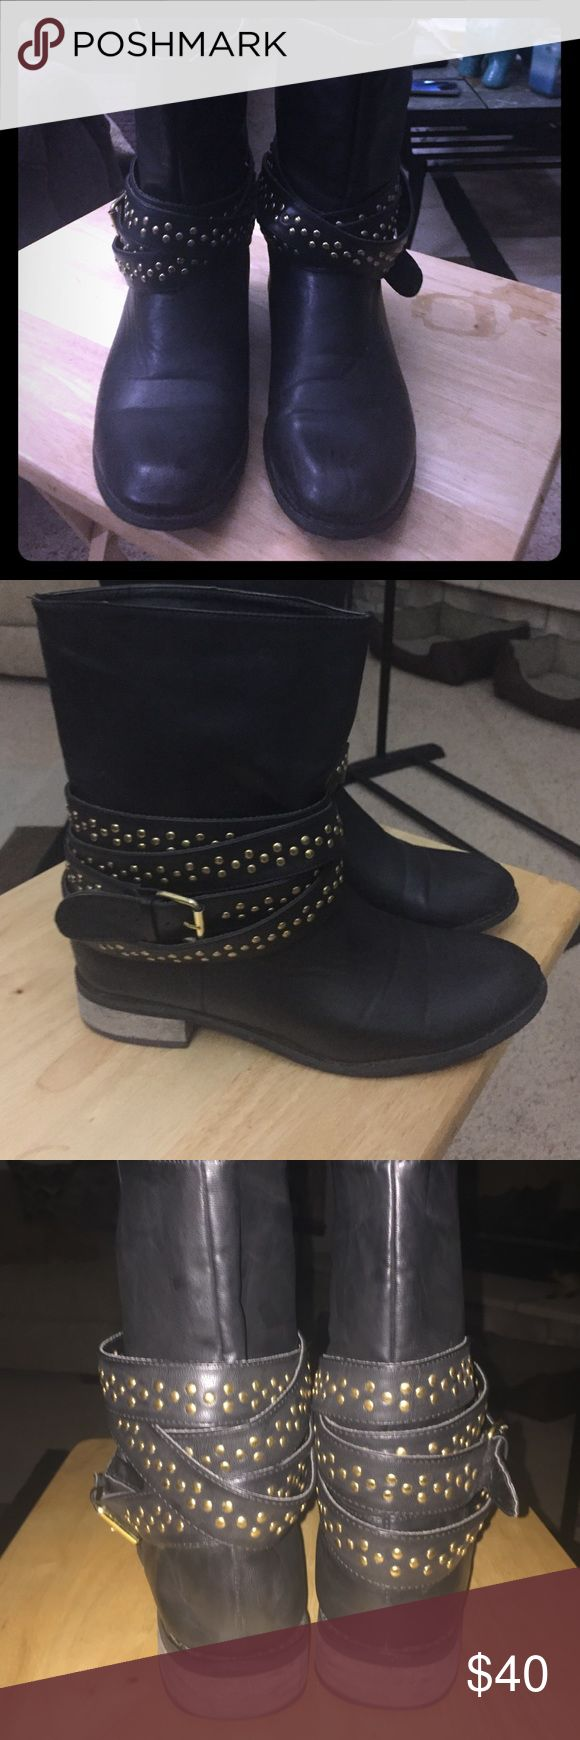 Super cute boots , I think I got them from Bakers 😍👸These are Super cute short boots . I hurt my foot from dropping something on it . They have been so swelled up cuz I'm favoring one .😏They say Yudi size 10 inside . I think I got them from Bakers . They were worn once or twice . As you can see there in great condition . Super CUTE . 👸I remember getting compliments on them when I wore them . Can't go wrong go with everything . 🎁💝📦 Yudi  Shoes Ankle Boots & Booties